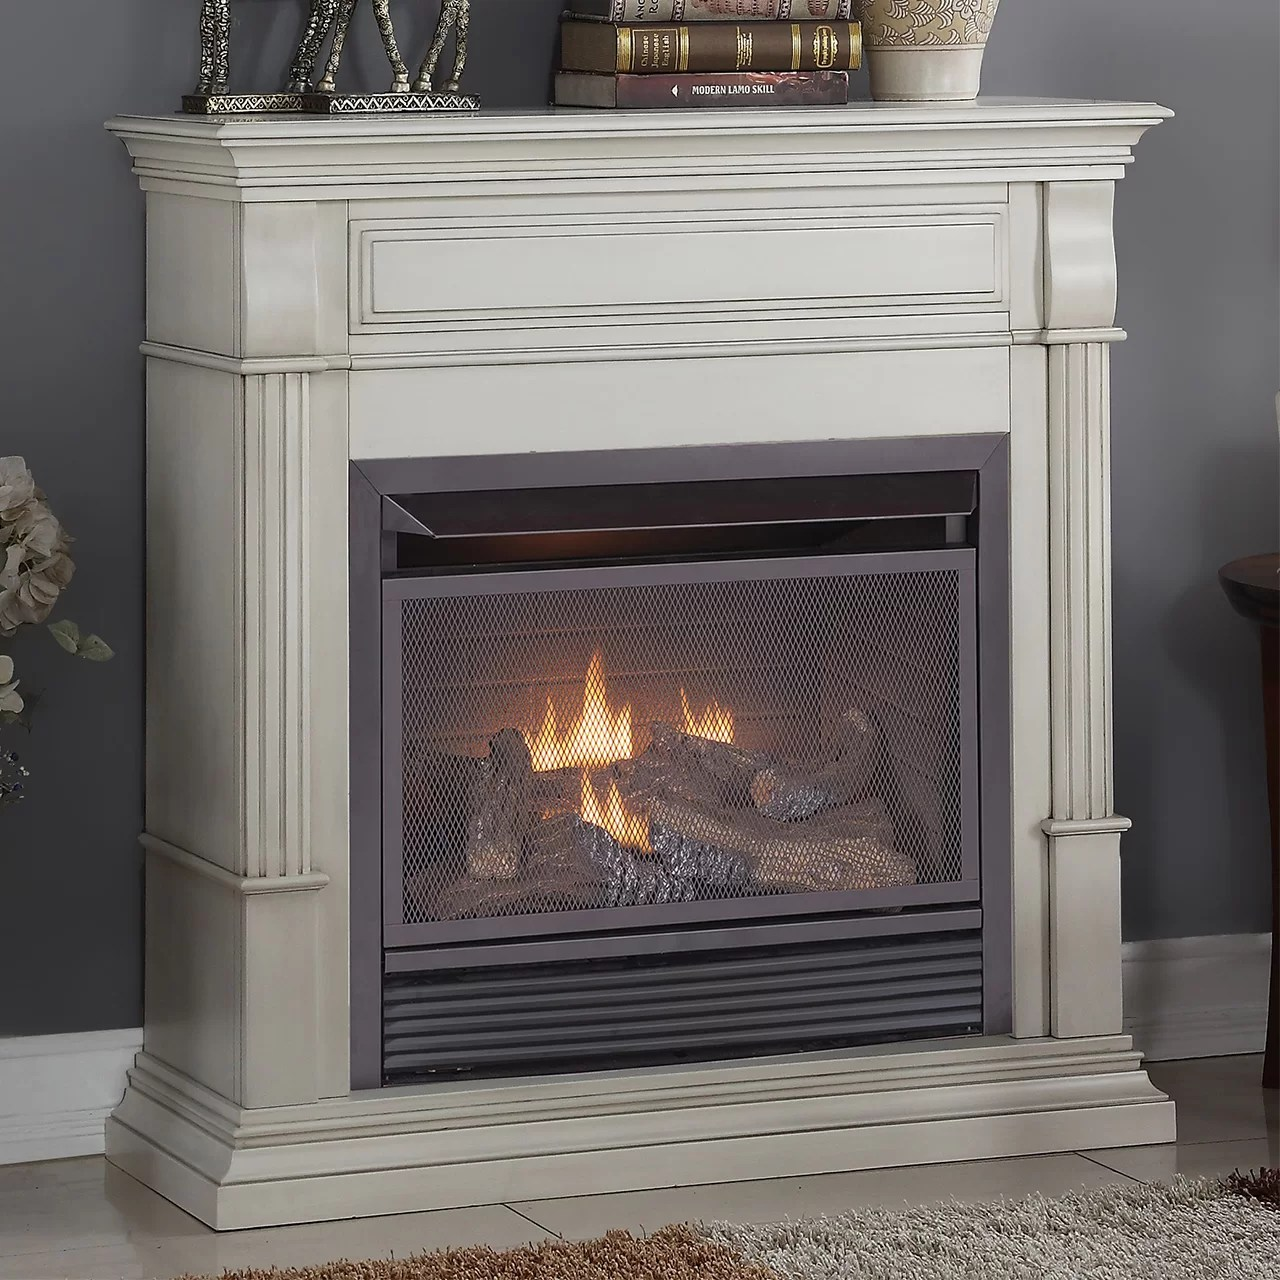 Propane Fireplace Installation Vent Free Natural Gas Propane Fireplace